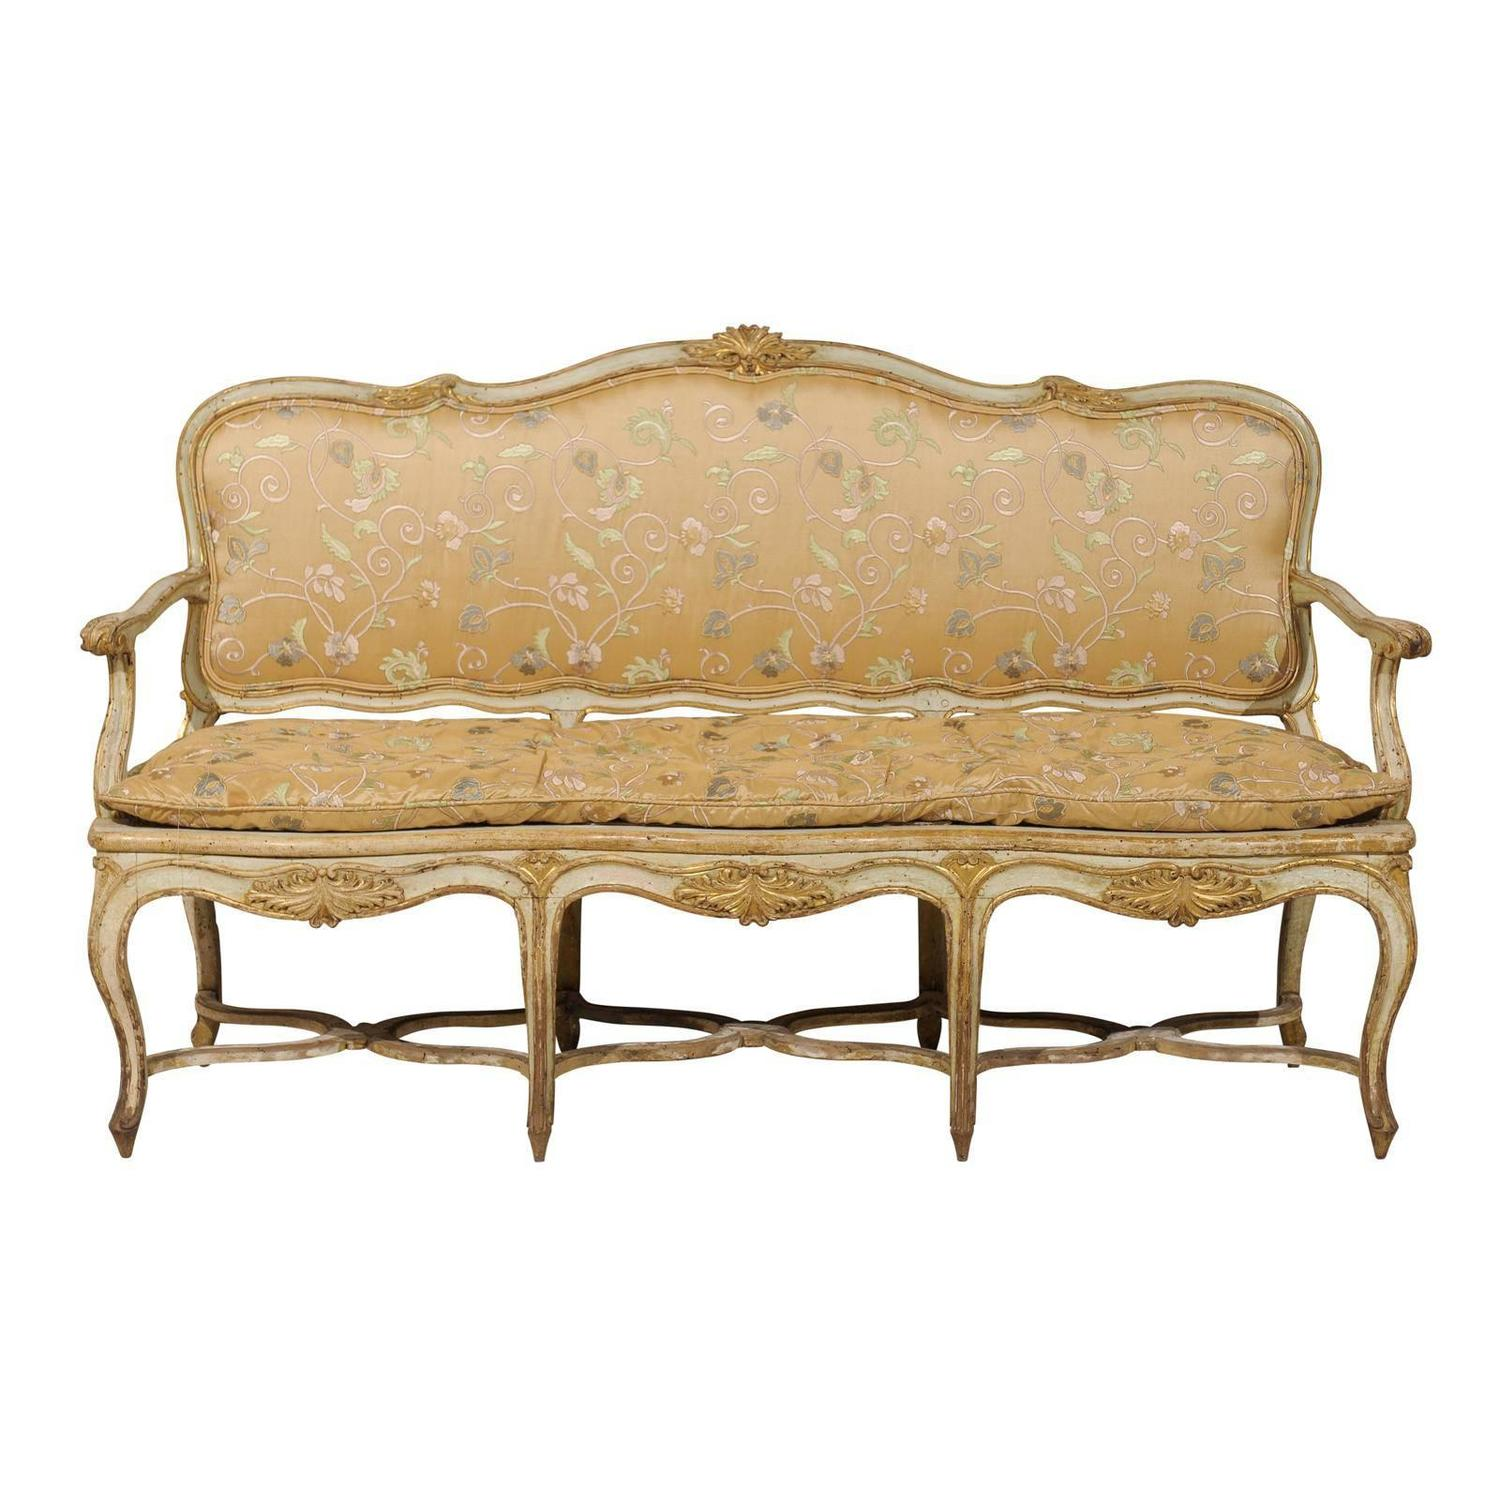 French 18th century sofa canap with original paint at for French canape sofa